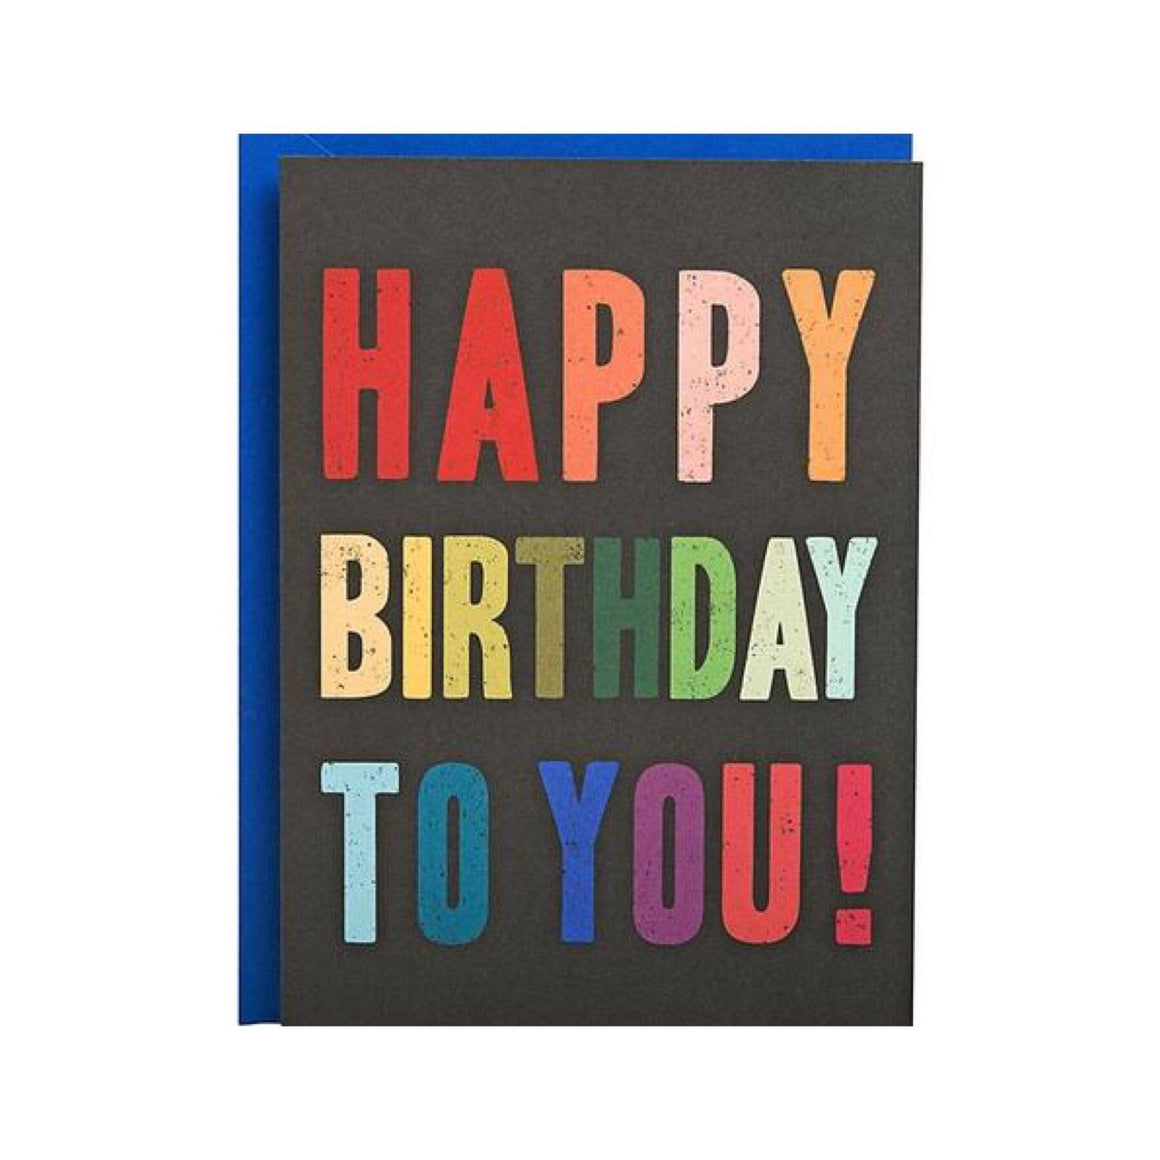 GIFT GIVING - GREETING CARD MULTI BIRTHDAY